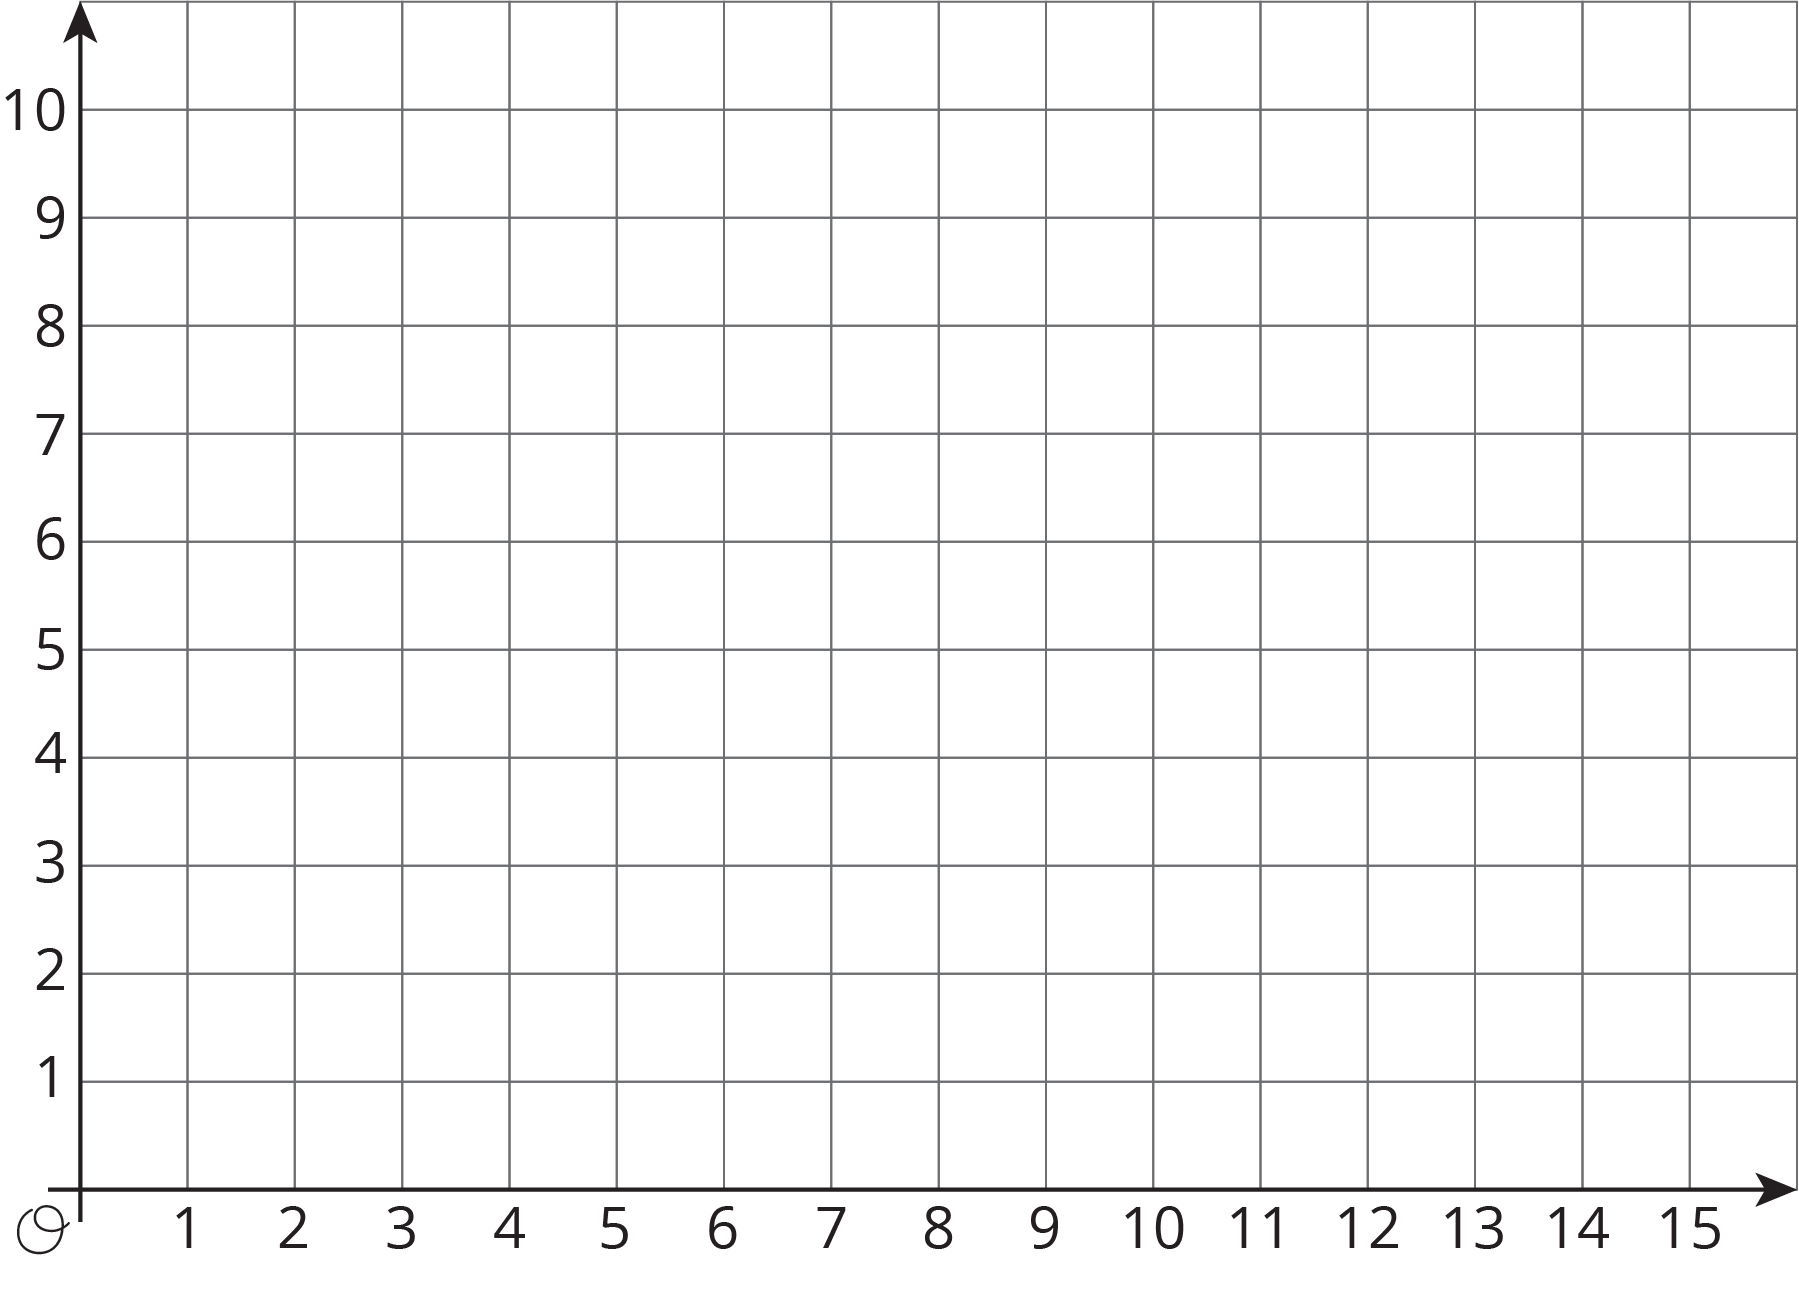 "A coordinate plane with the origin labeled ""O"". The numbers 0 through 15 are indicated on the horizontal axis and the numbers 0 through 10 are indicated on the vertical axis."